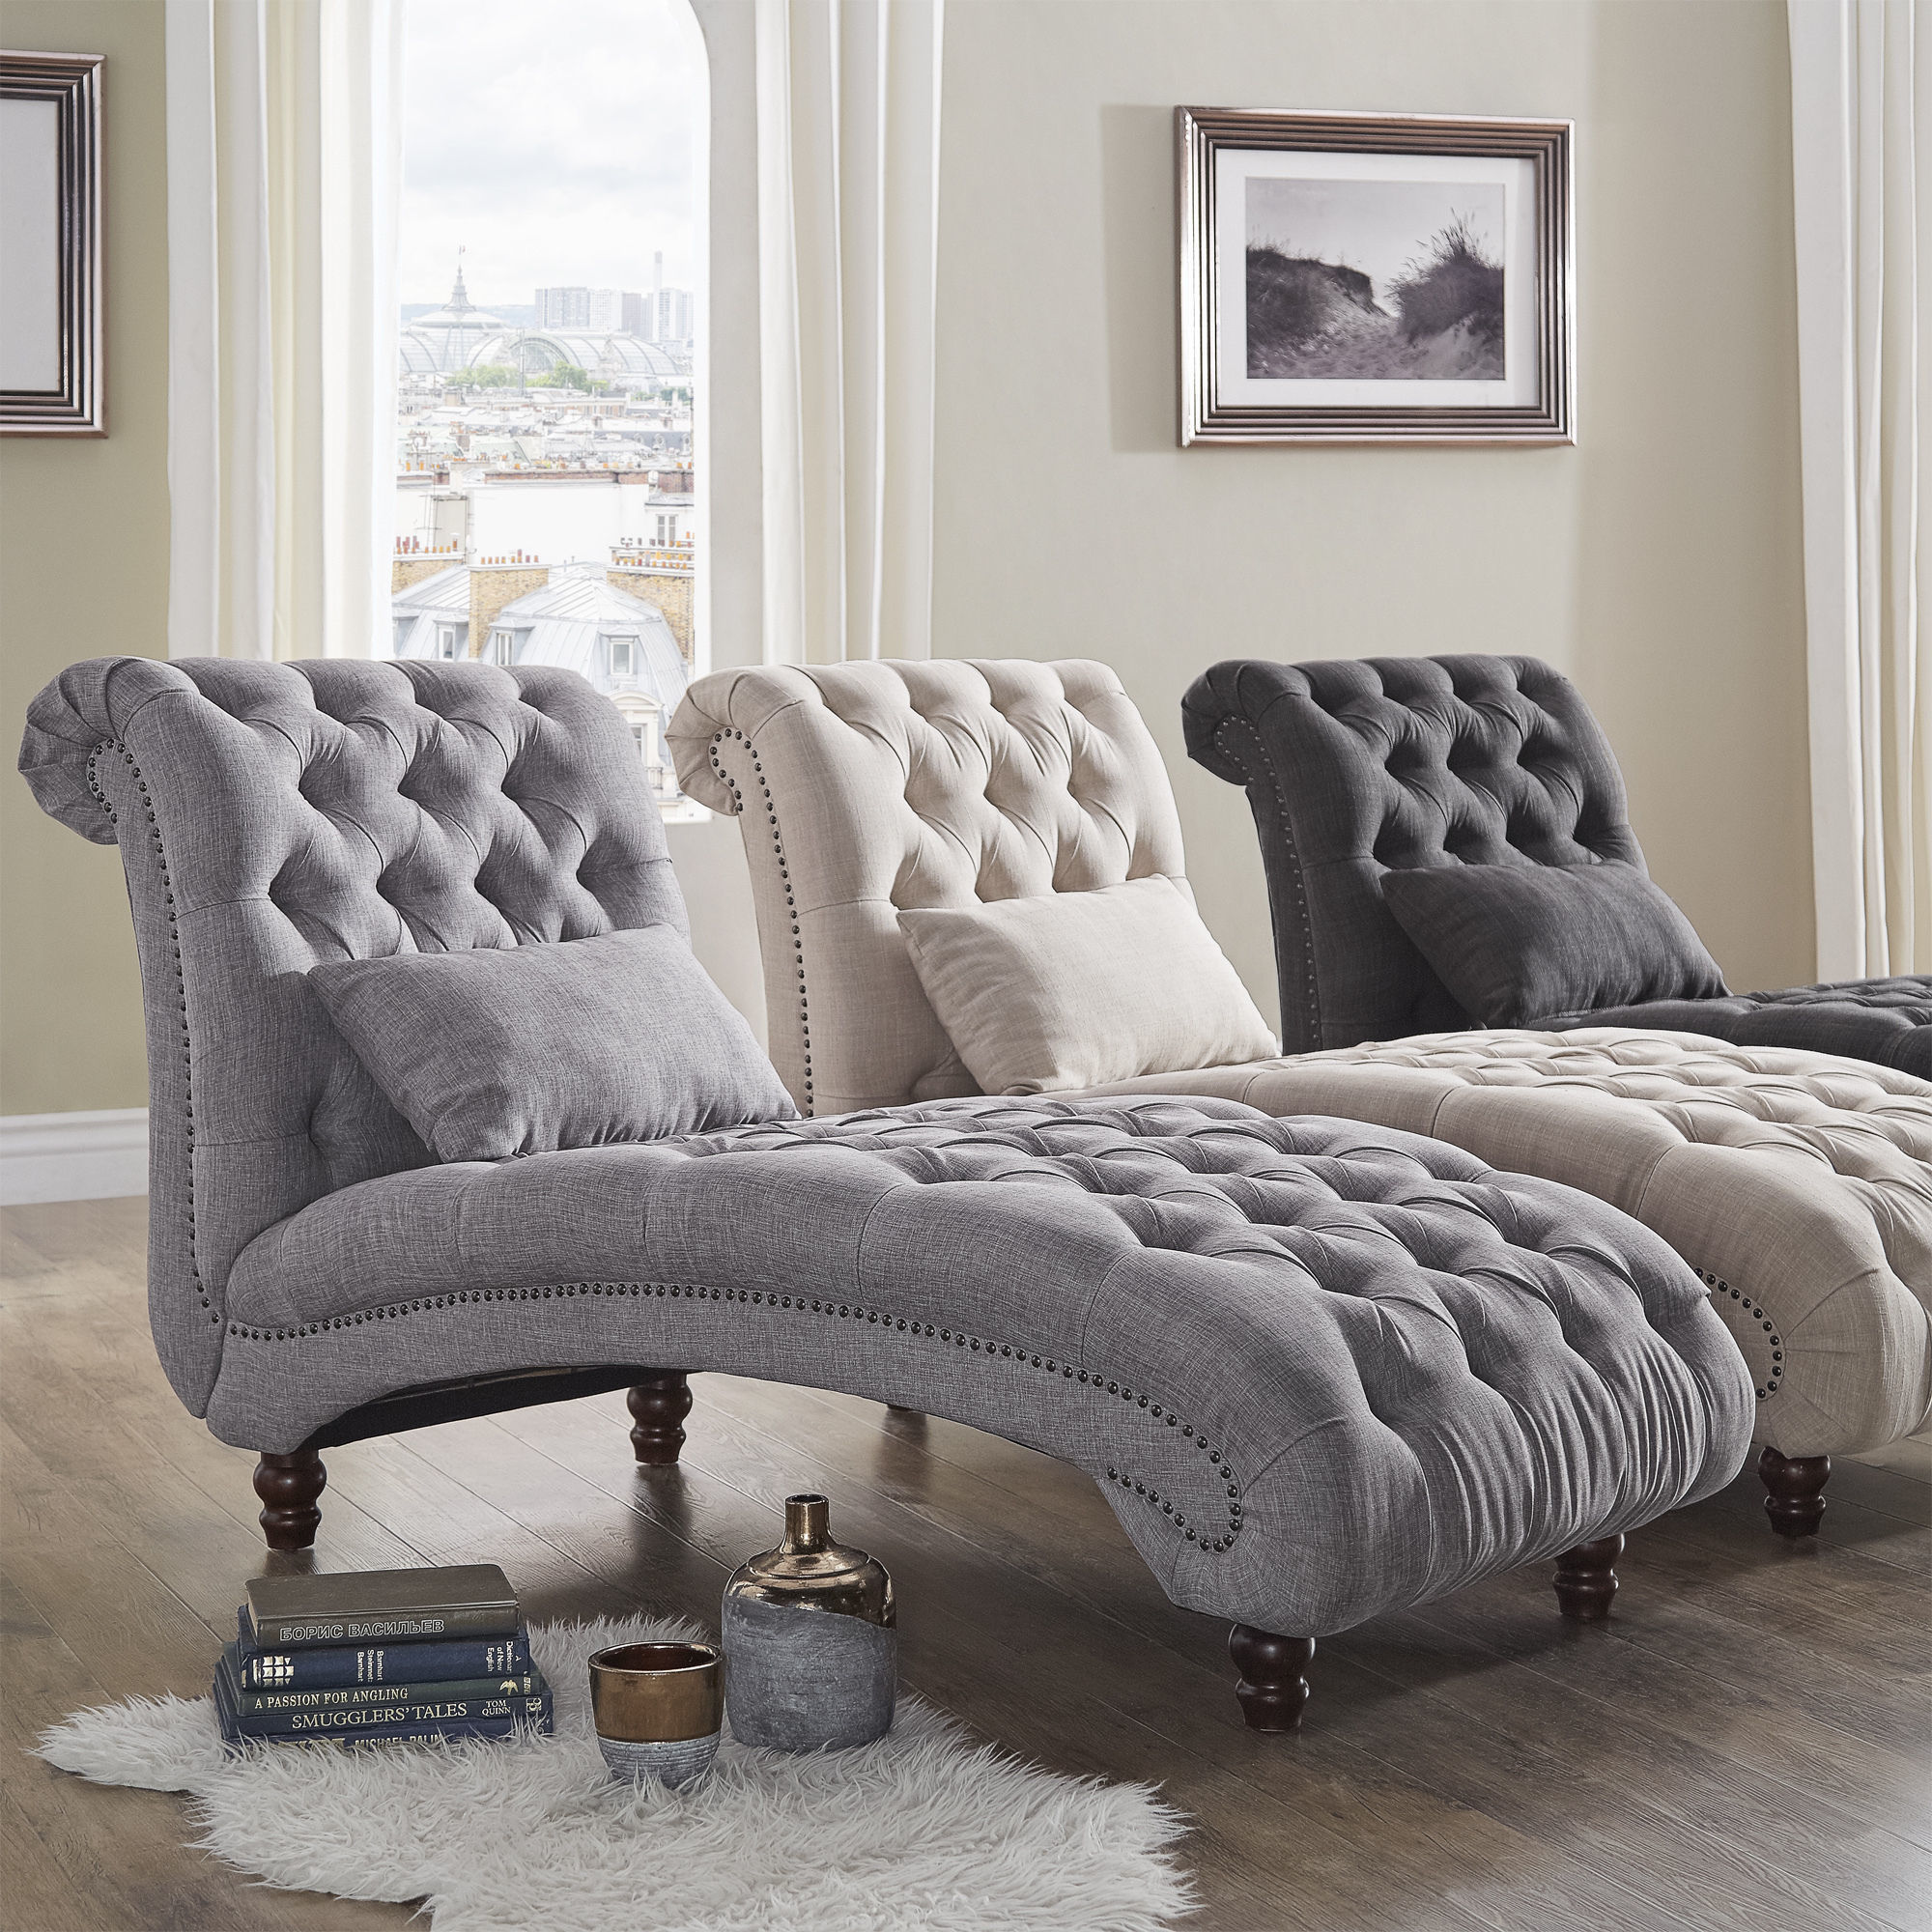 DETAILS & Grey Fainting Couch Sofa Tufted Chaise Lounge Chair Armless With ...